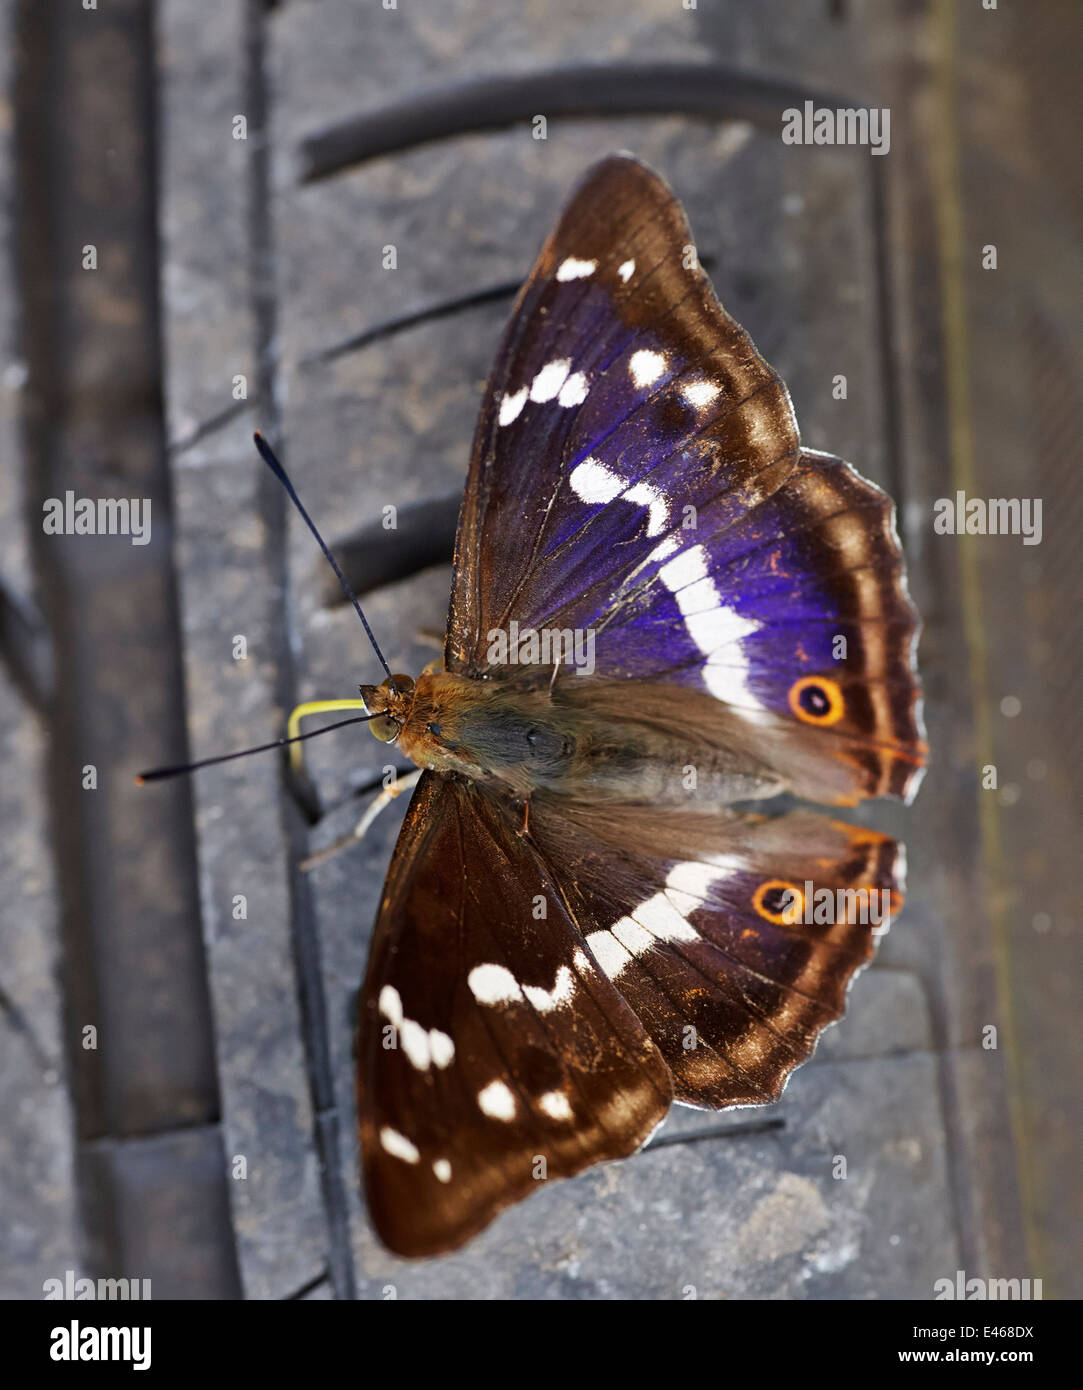 Purple Emperor butterfly probing a car tyre with its proboscis. Bookham Common, Surrey, England. - Stock Image